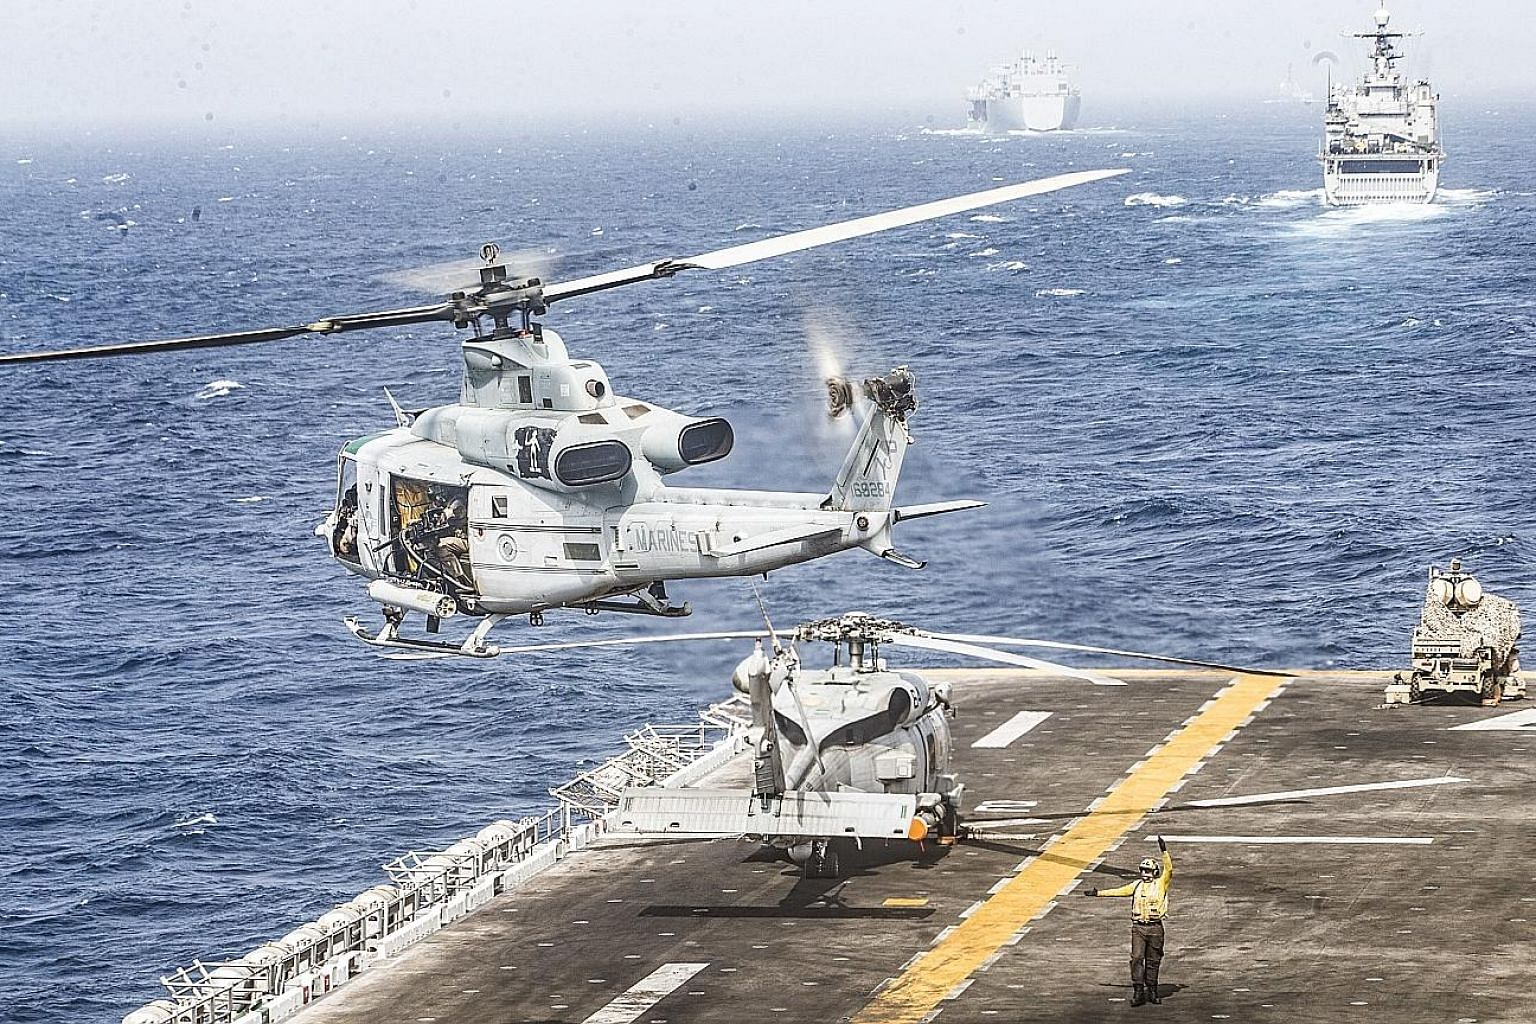 A helicopter taking off from the Boxer, a US amphibious assault ship, in the Strait of Hormuz, on Thursday. President Donald Trump said on Thursday the US Navy had shot down an Iranian drone that threatened the Boxer. PHOTO: NYTIMES